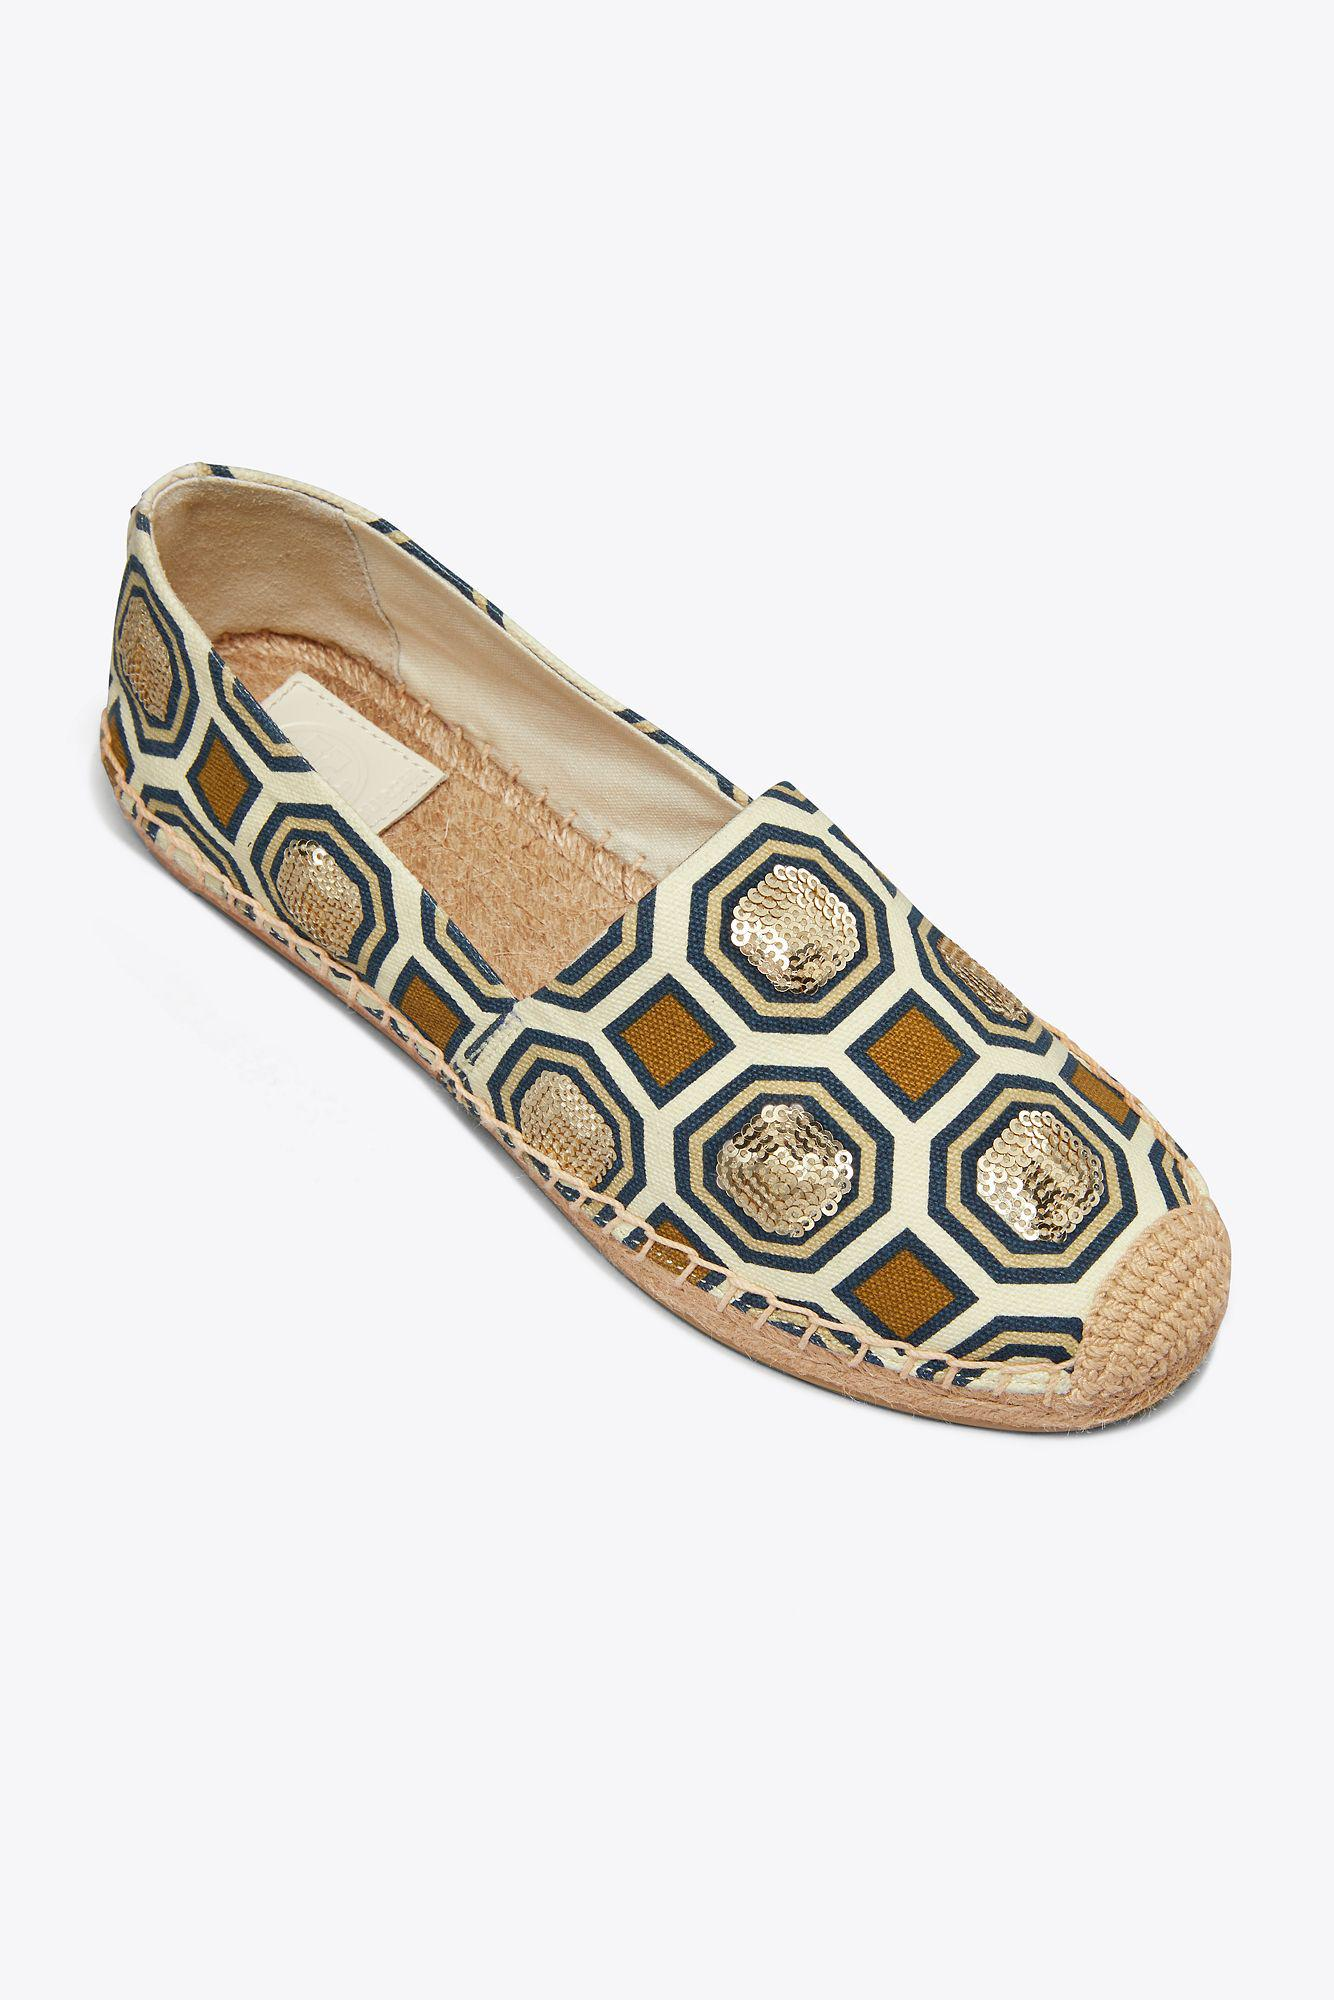 5ee6eff020a Tory Burch Cecily Sequin Embellished Espadrille (women) - Lyst